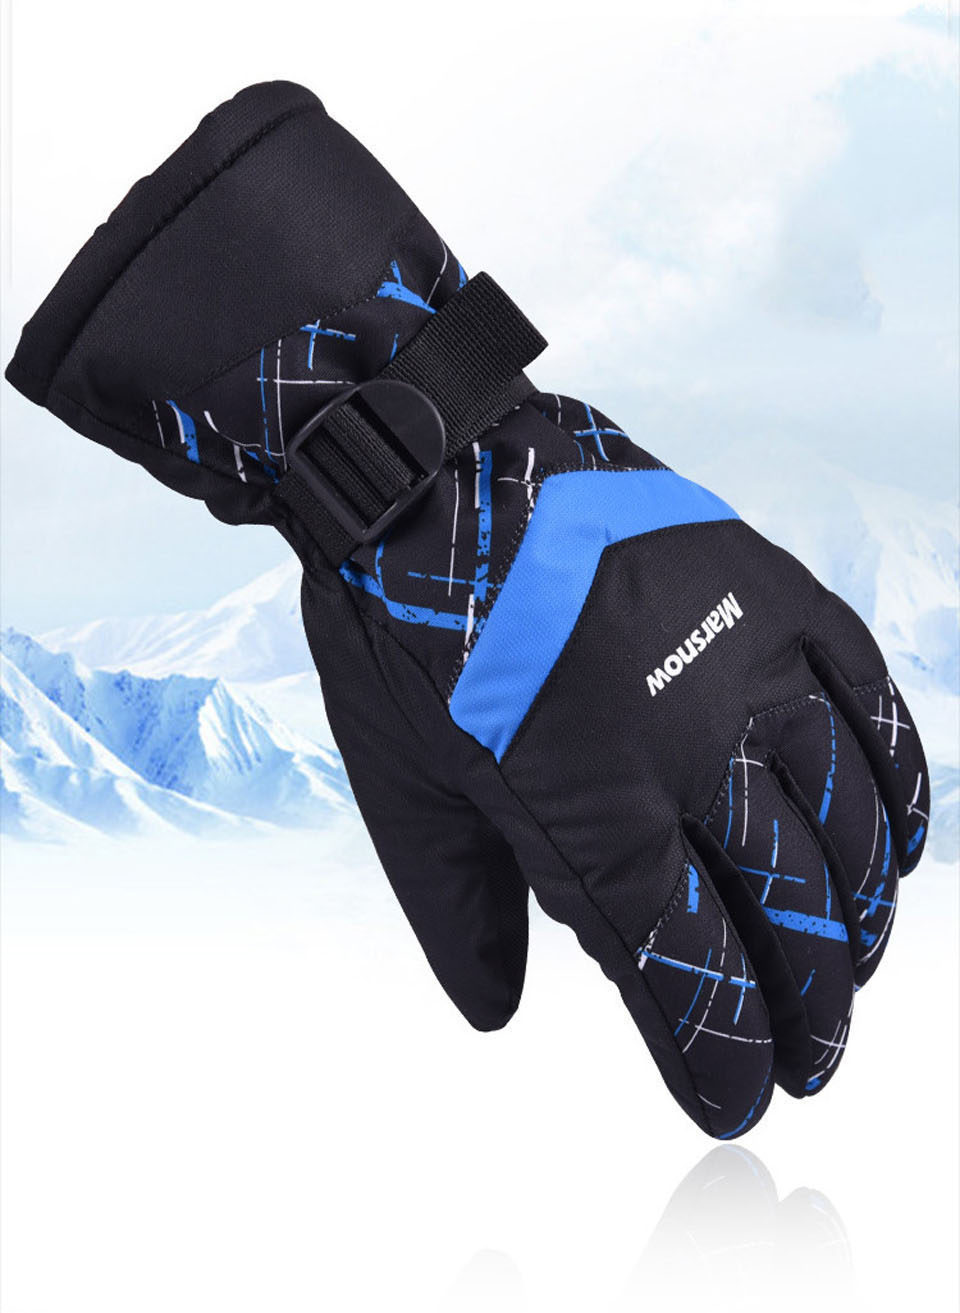 Winter Warm Mountain Snowboard Ski Gloves Men Women Cold Snow Skiing Mittens Waterproof Snowmobile Bike Motorcycle Snow